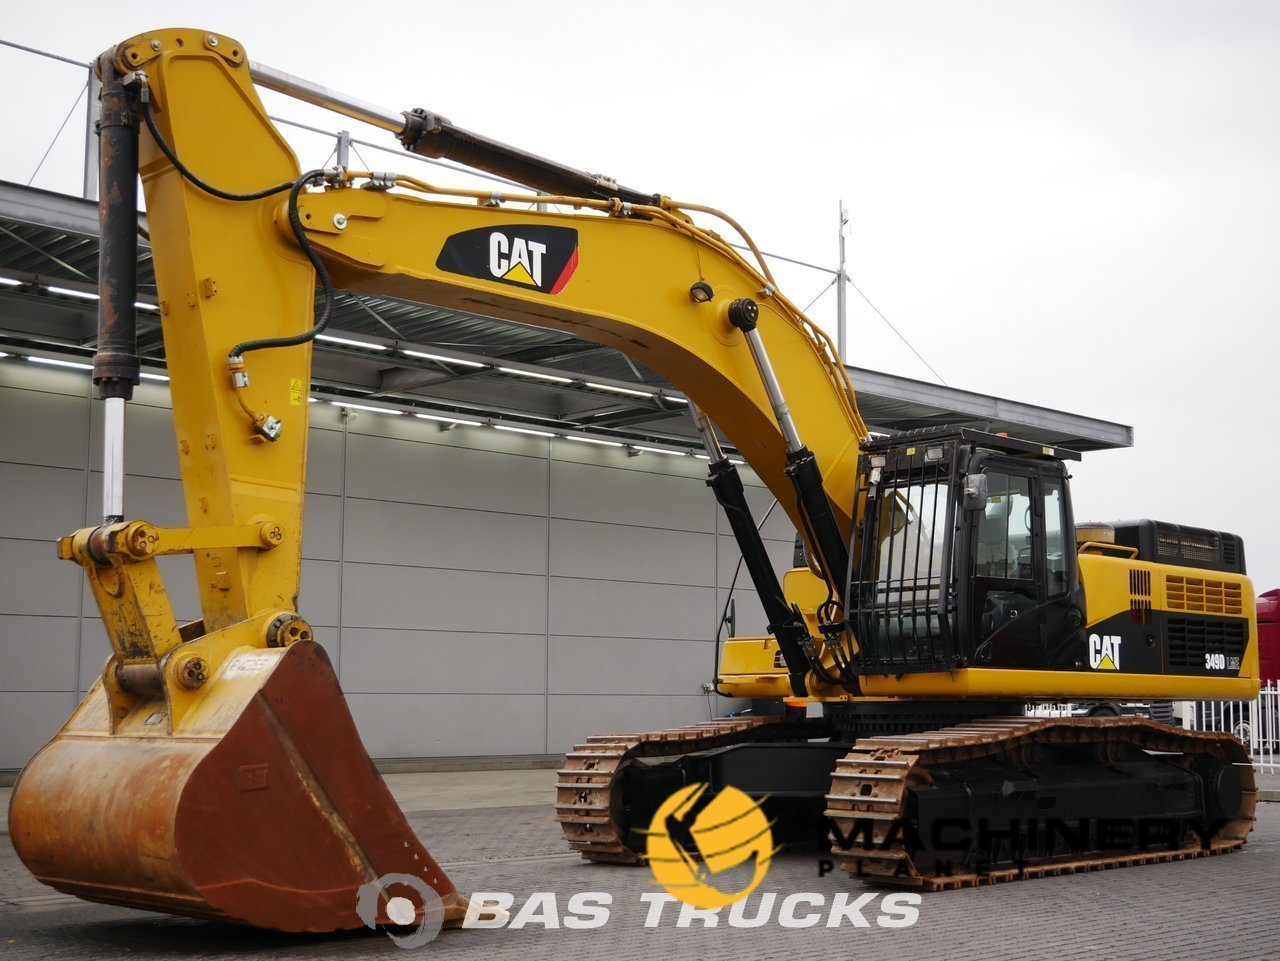 Used-Construction-equipment-Caterpillar-349-D-LME-Track-2014_140366_1-1554202898900_5ca34112dbbf8-1.jpg